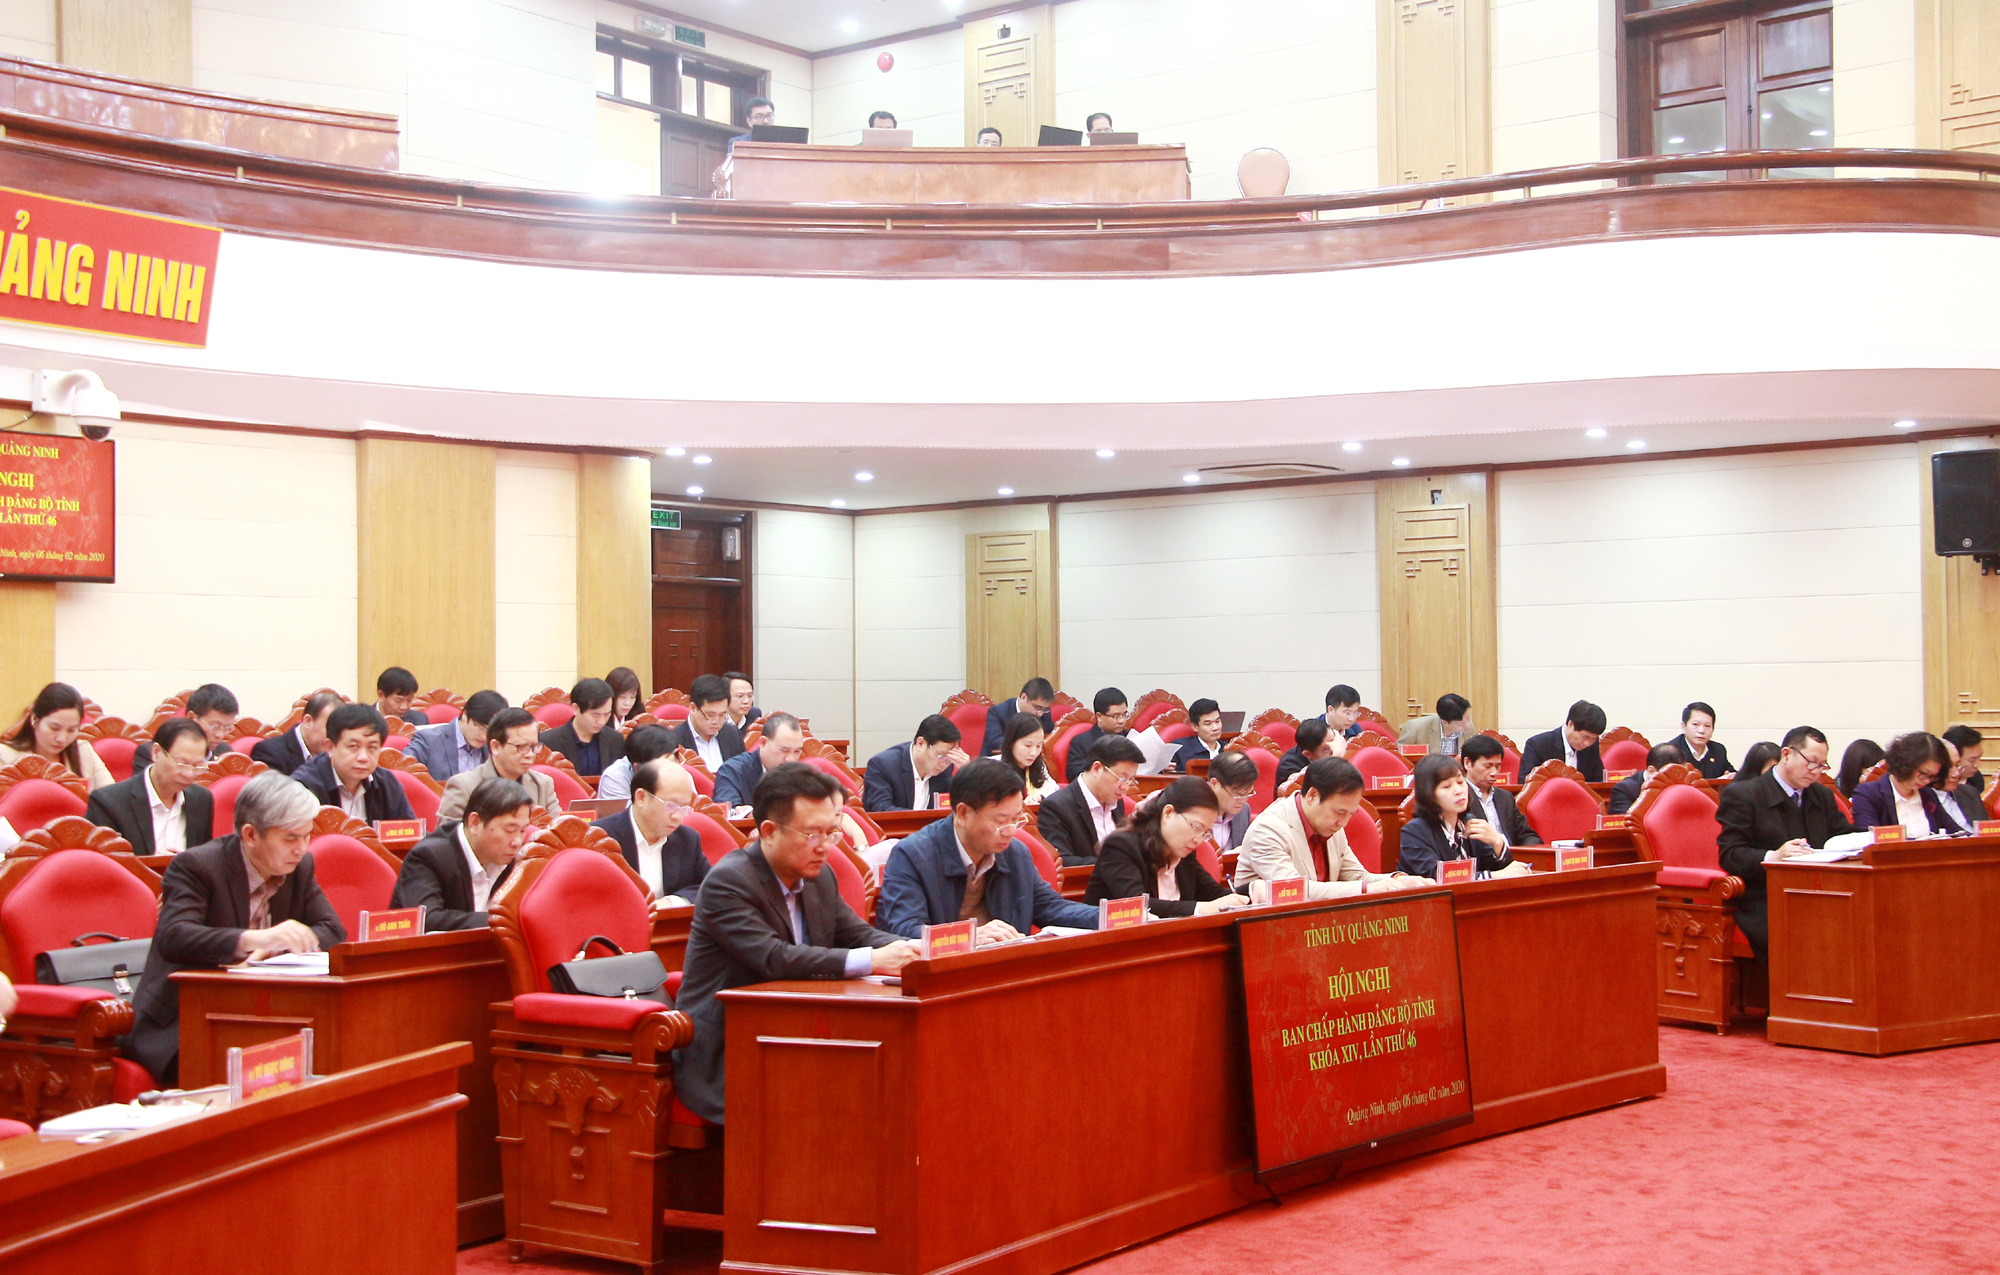 Quang Ninh province: Draft political report puts forth important issues